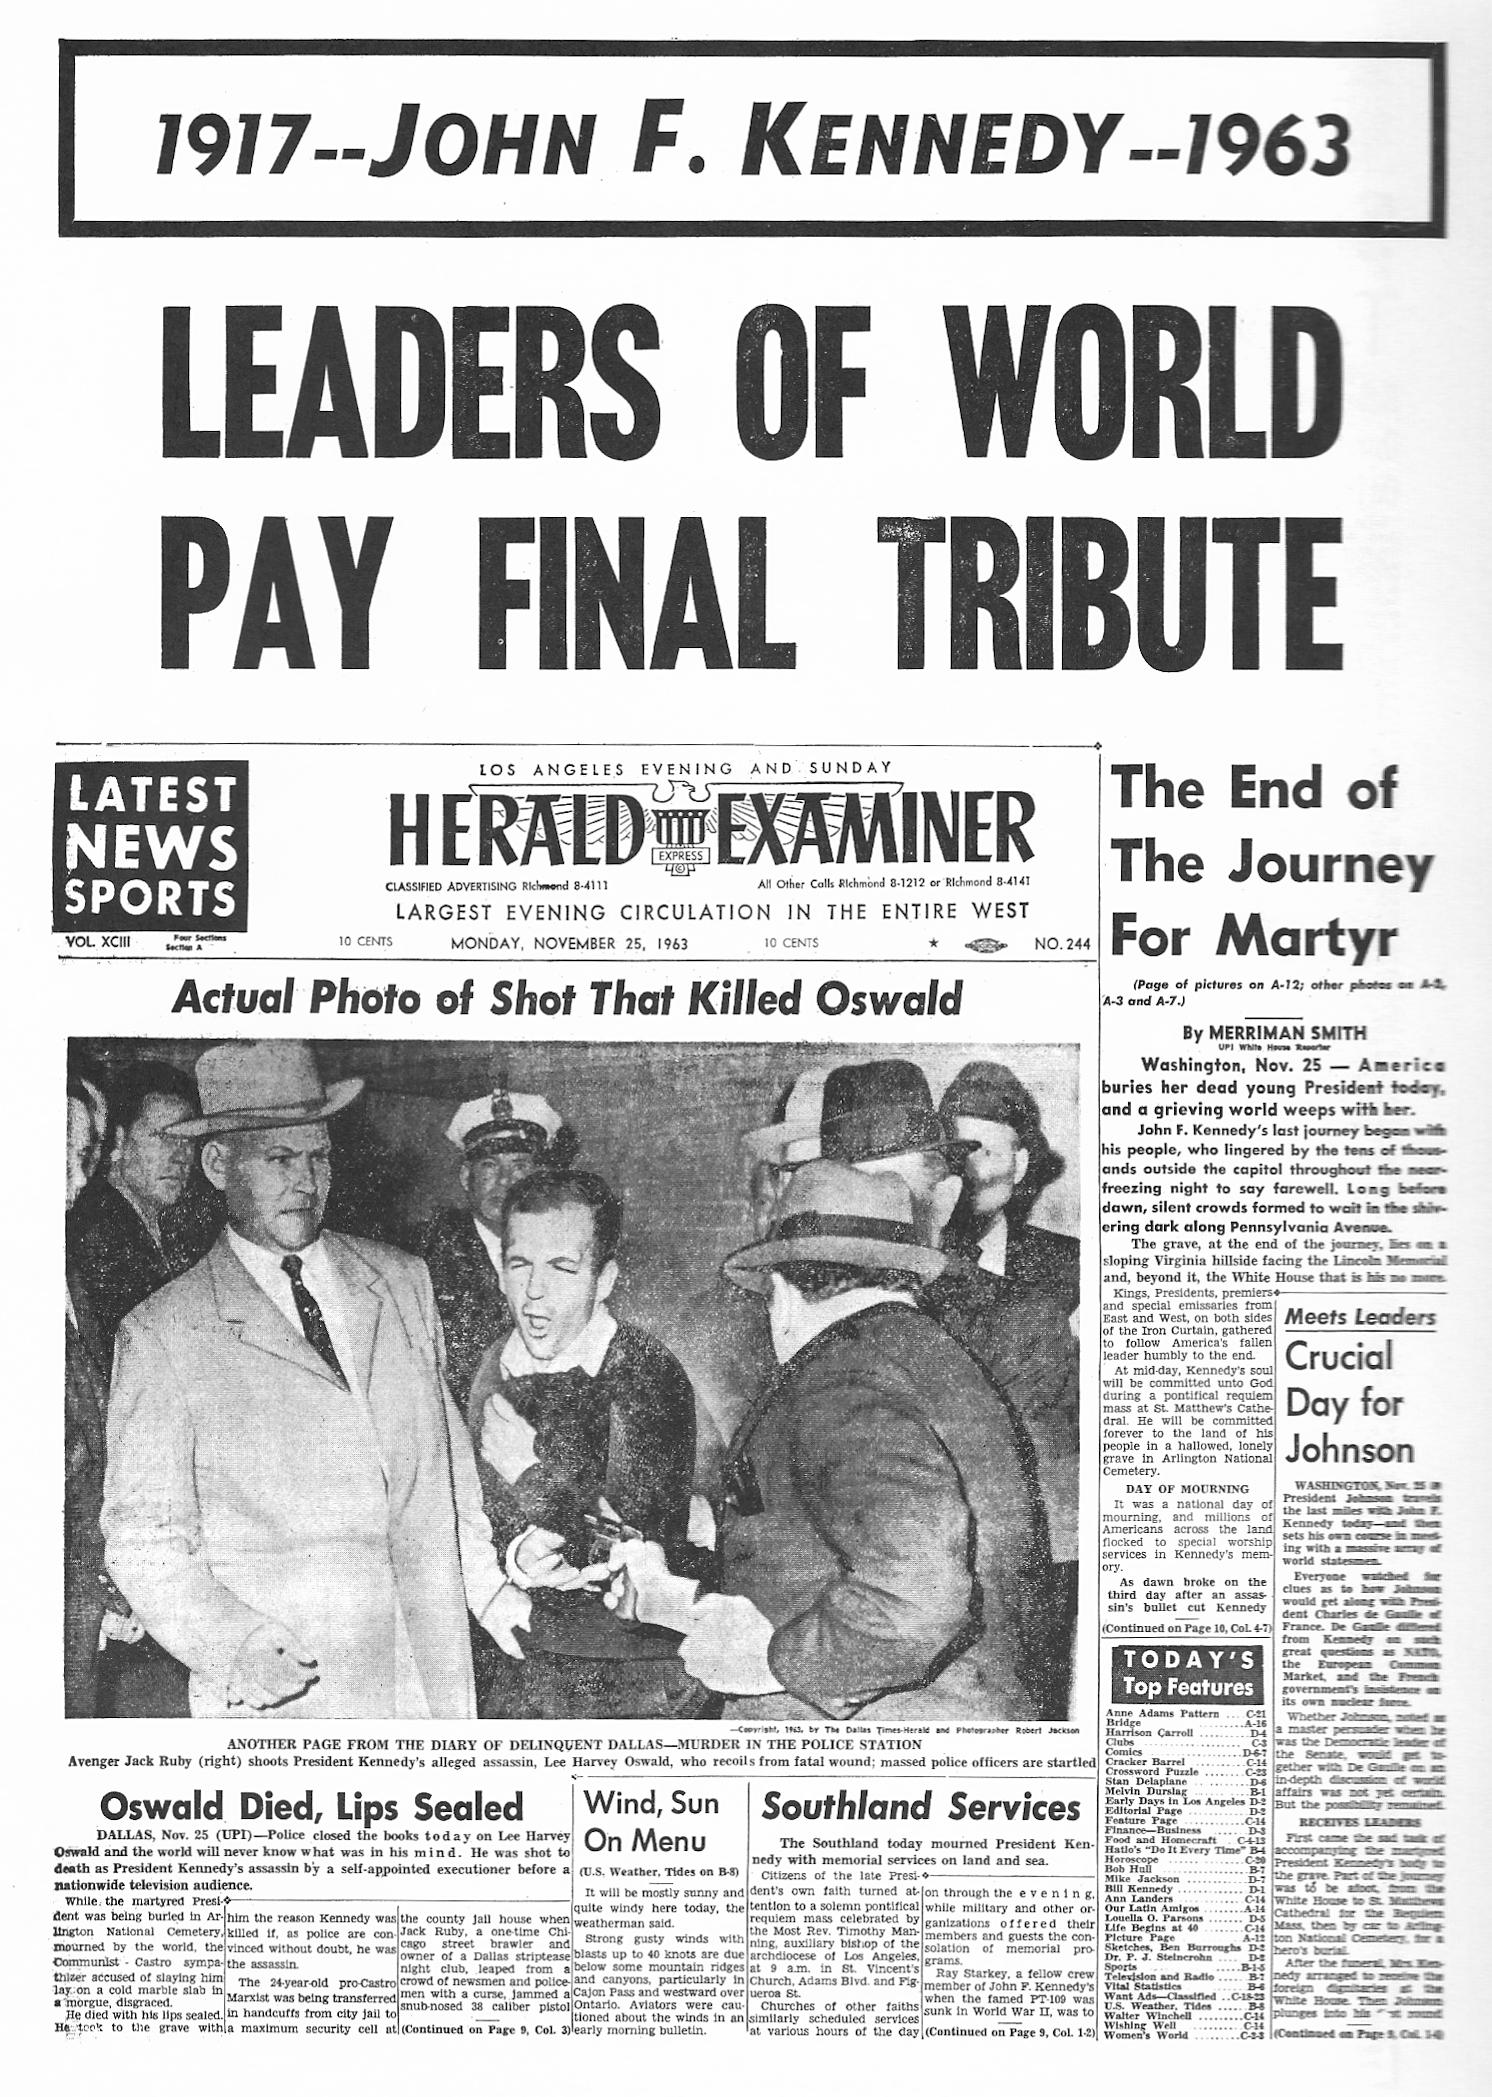 Los Angeles Herald Examiner Newspaper Los Angeles Herald Examiner 39